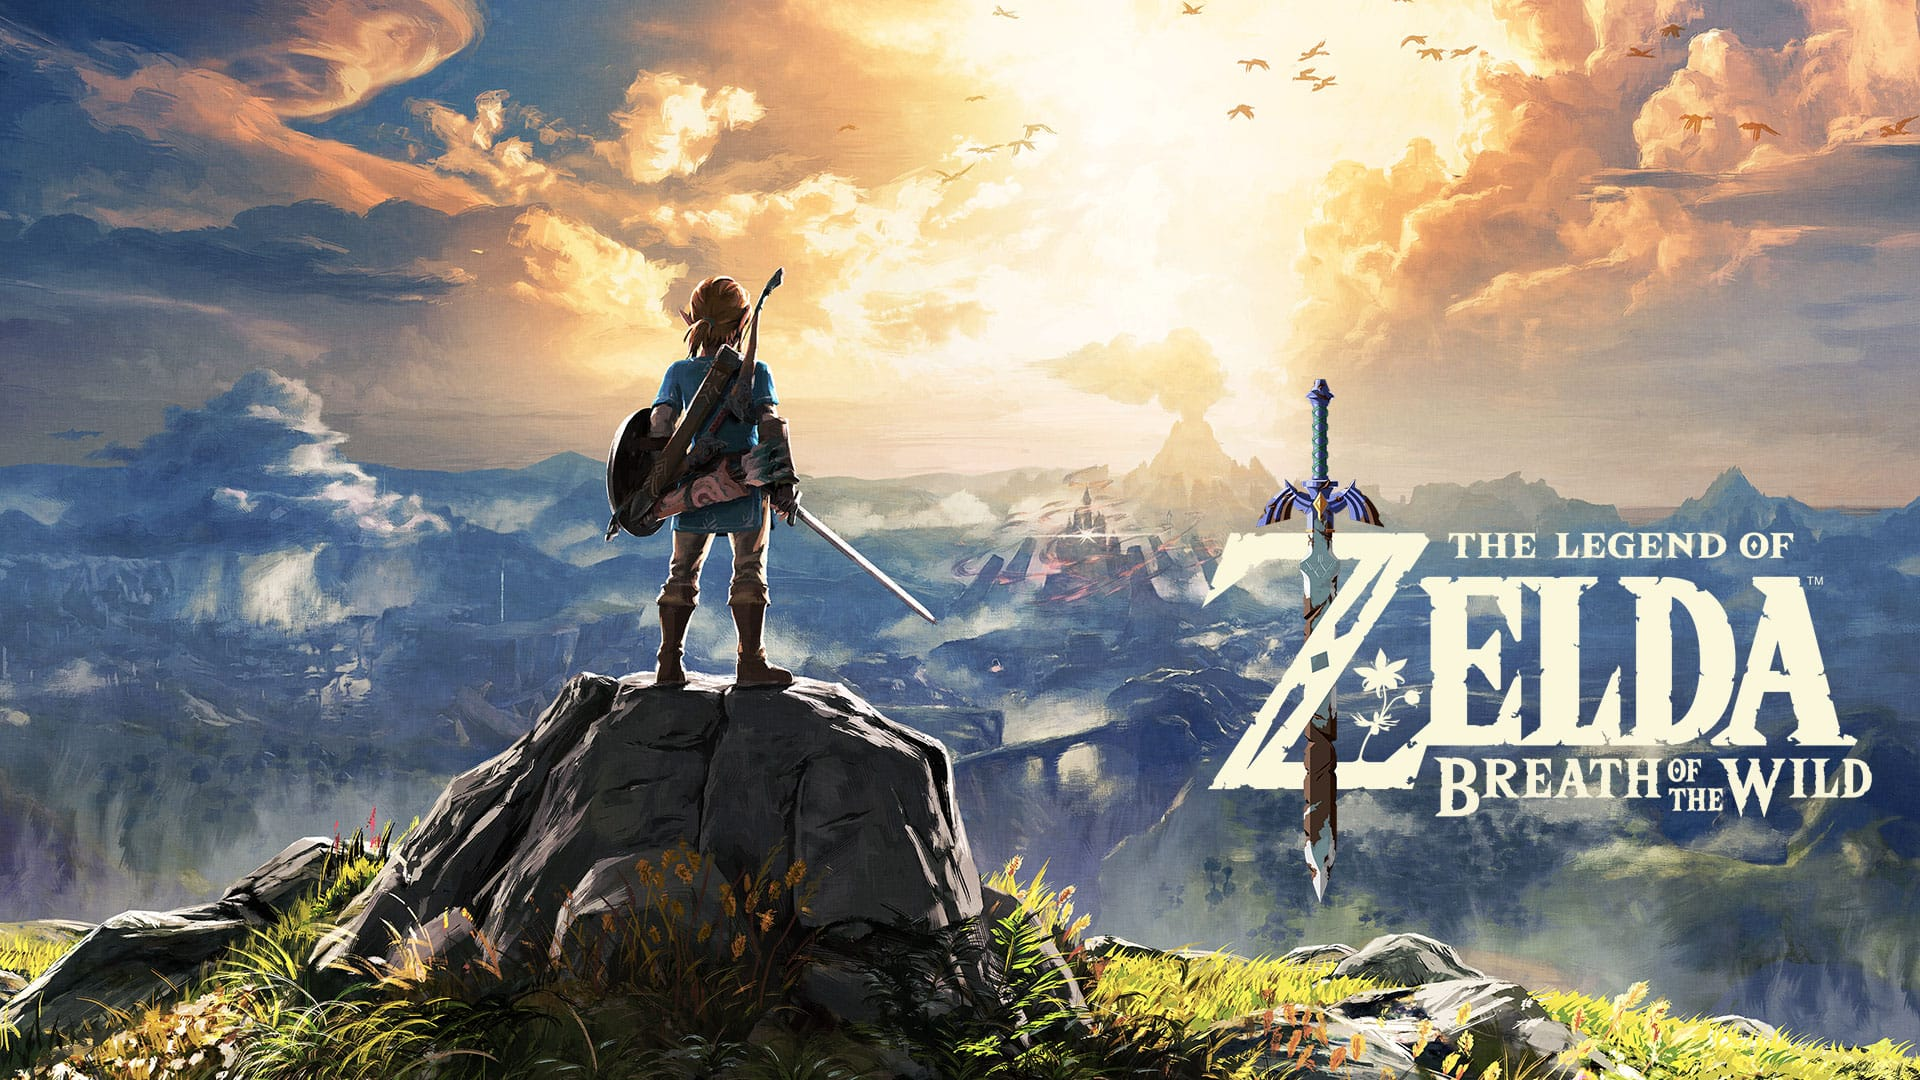 The Legend of Zelda: Breath of the Wild for Nintendo Switch - Nintendo Game Details $42